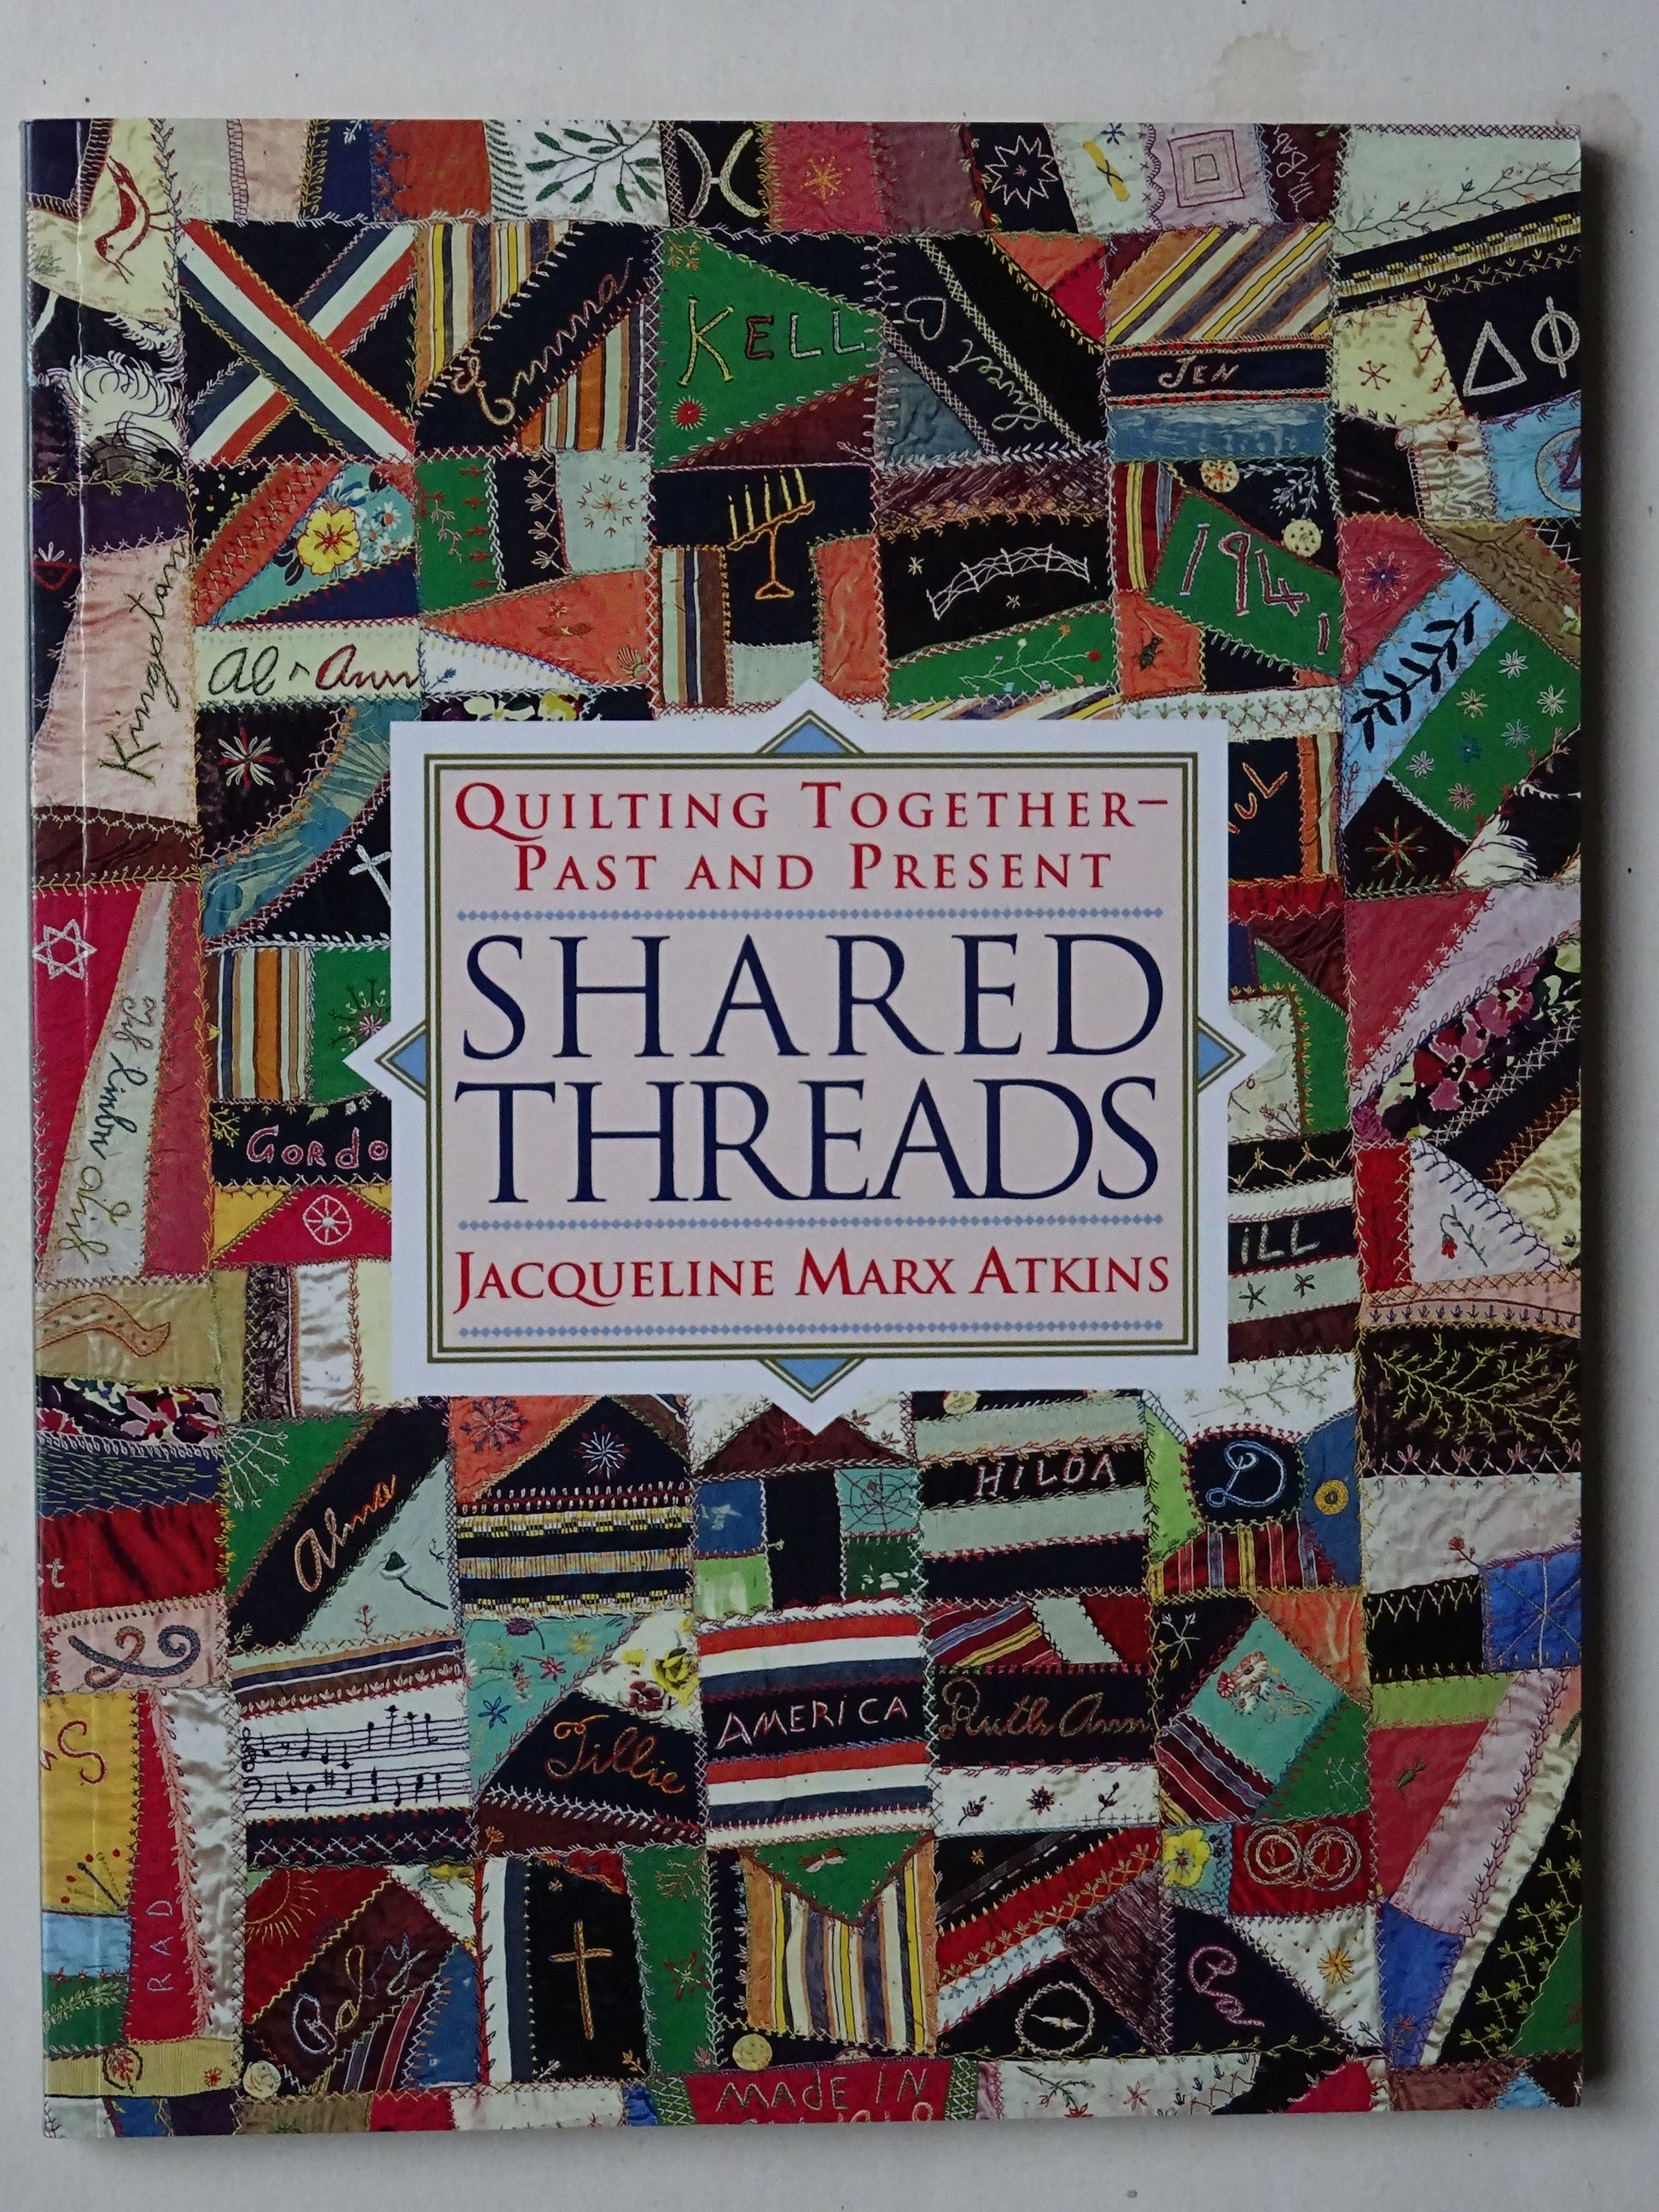 Atkins, Jacqueline Marz -Shared Threads quilting together past and present